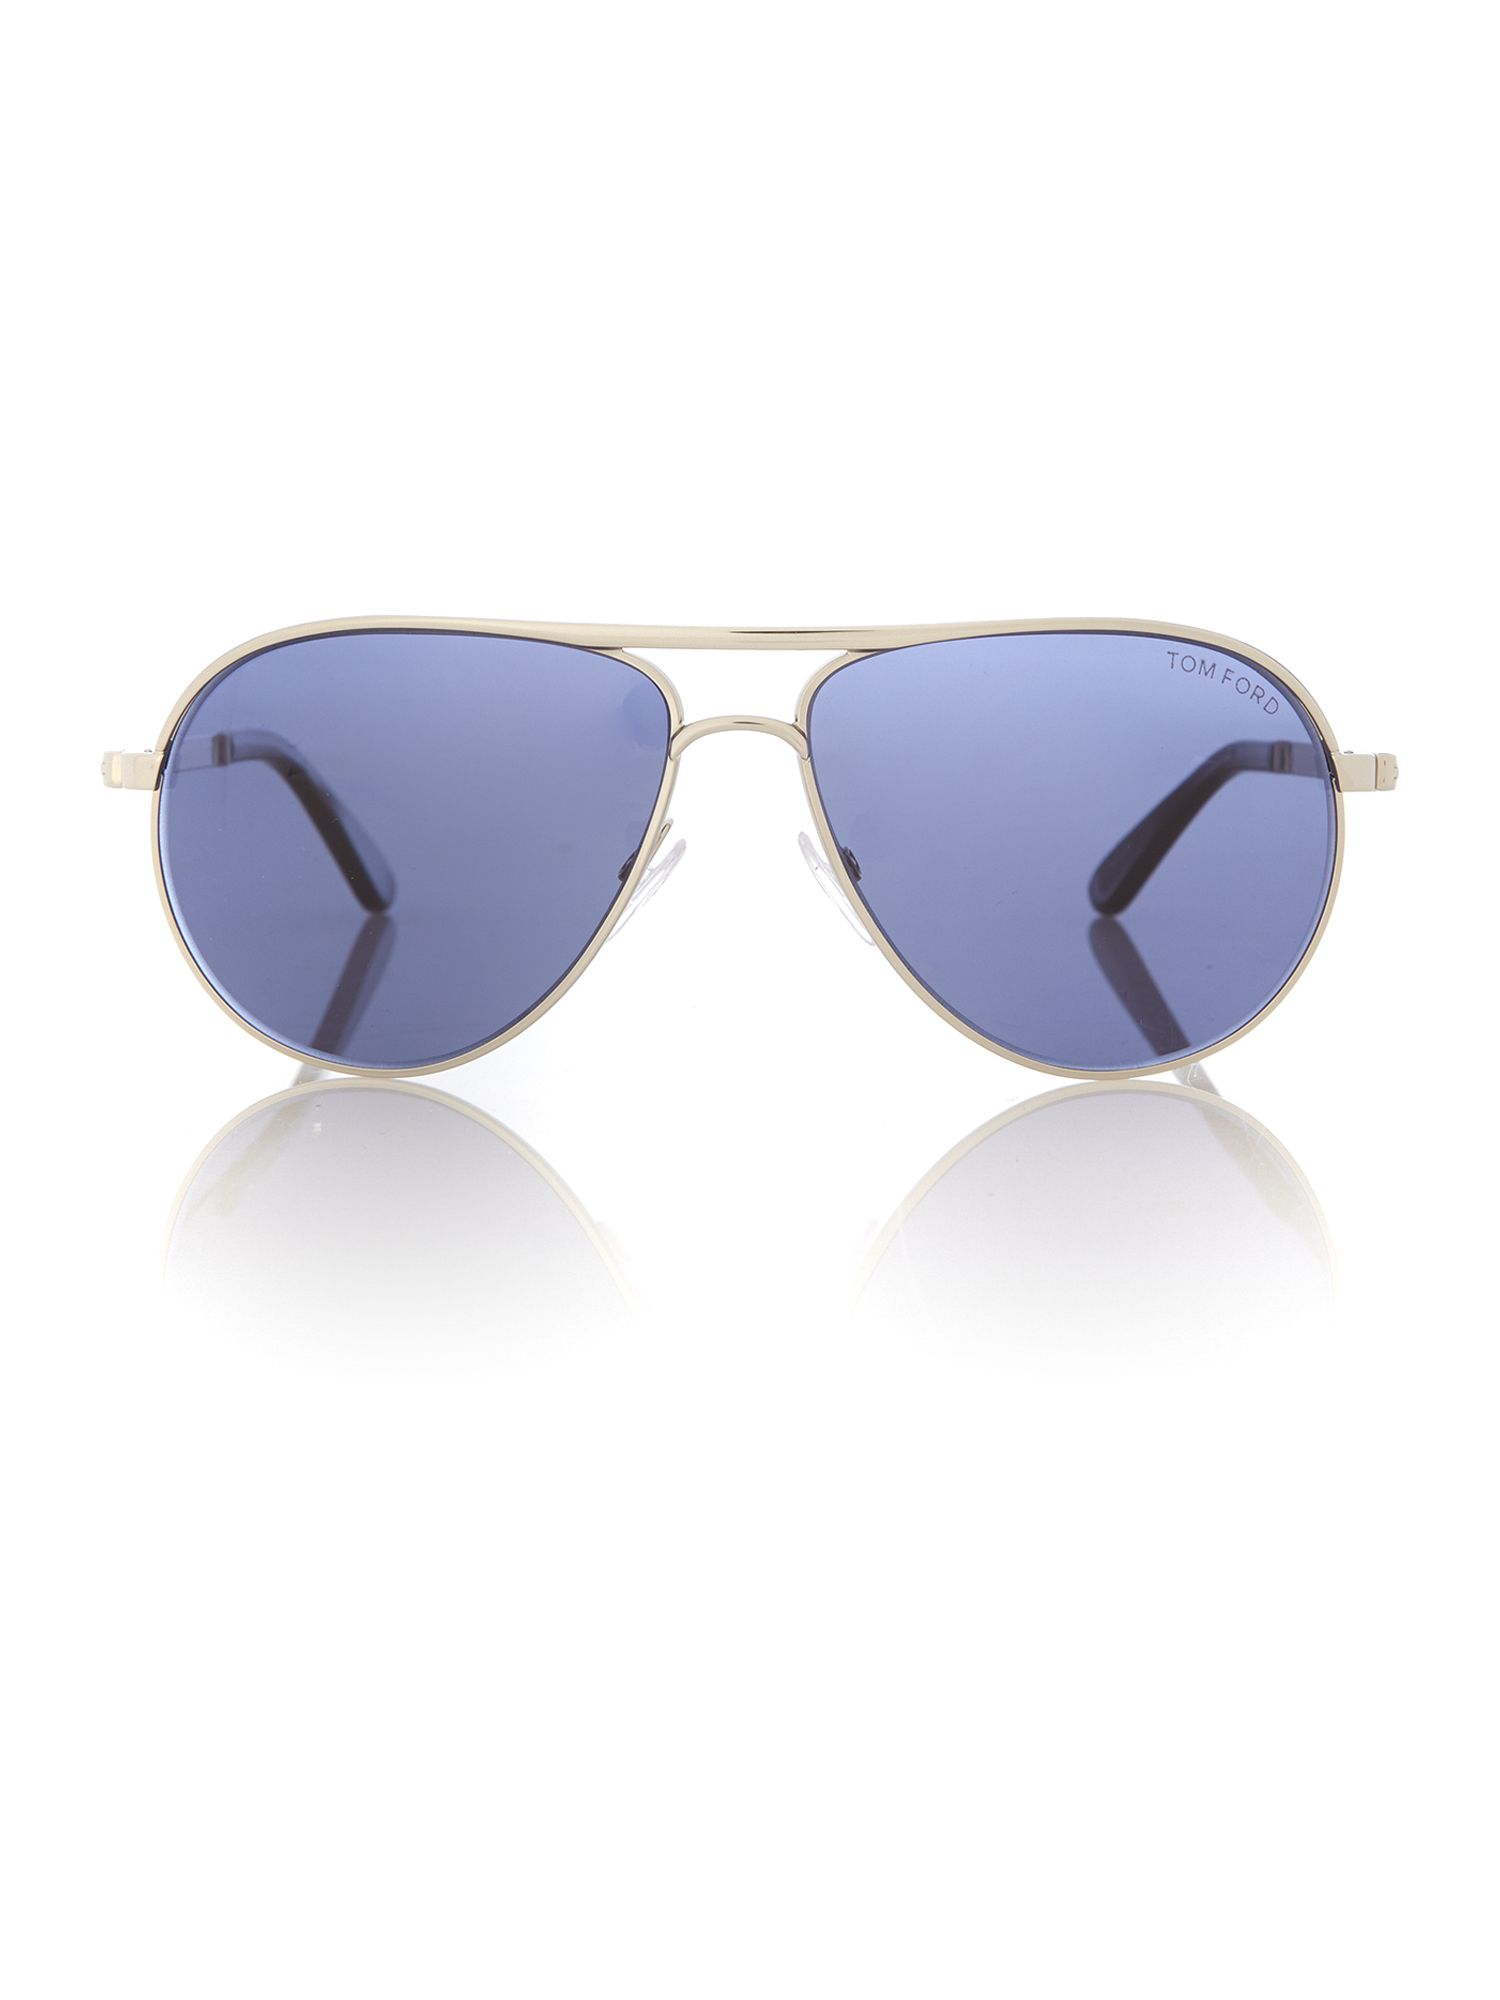 Mens pilot sunglasses